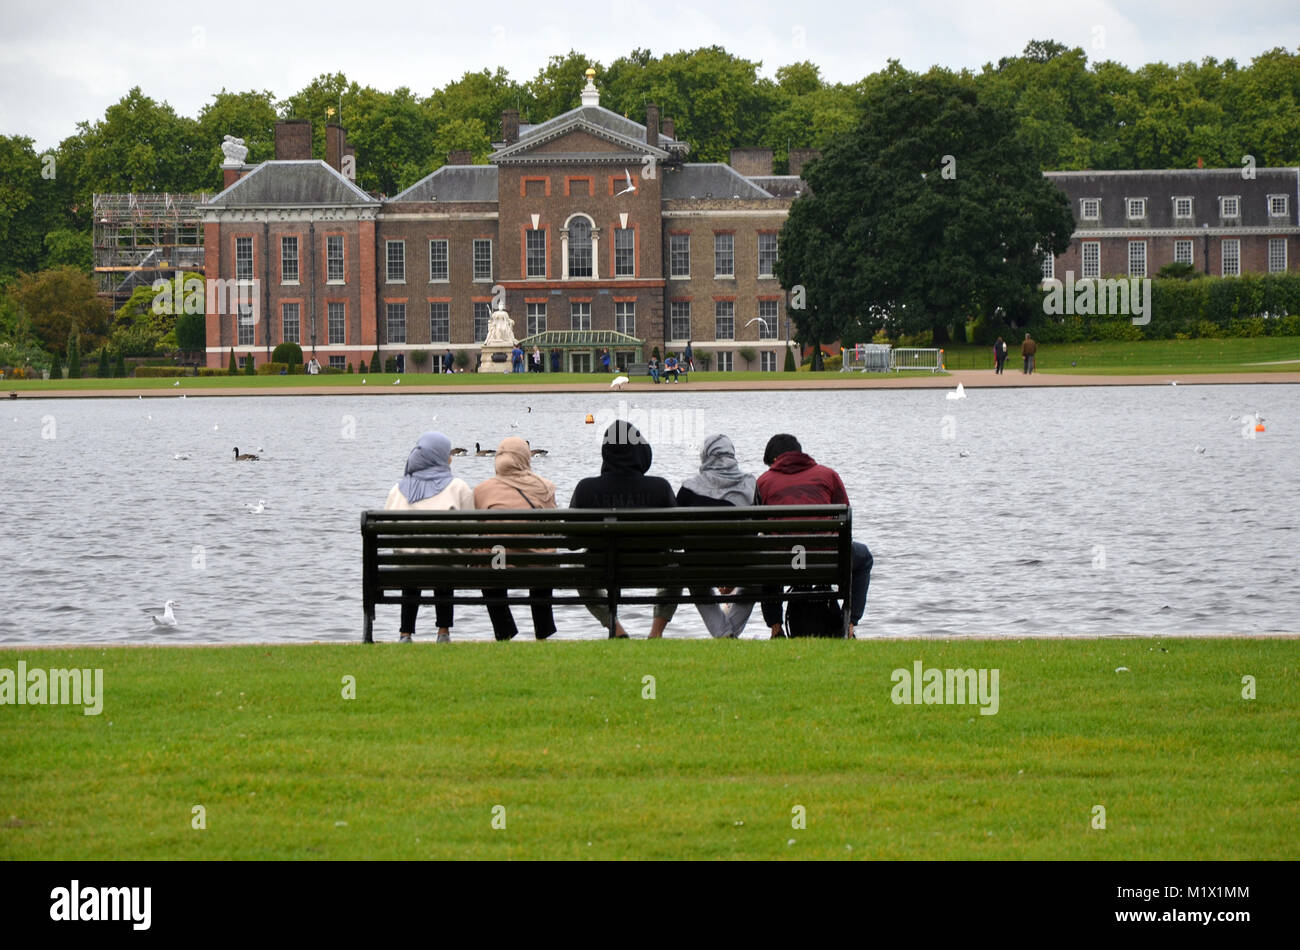 Kensington Palace, royal residence, Kensington Gardens, Royal Borough of Kensington and Chelsea, London, England - Stock Image